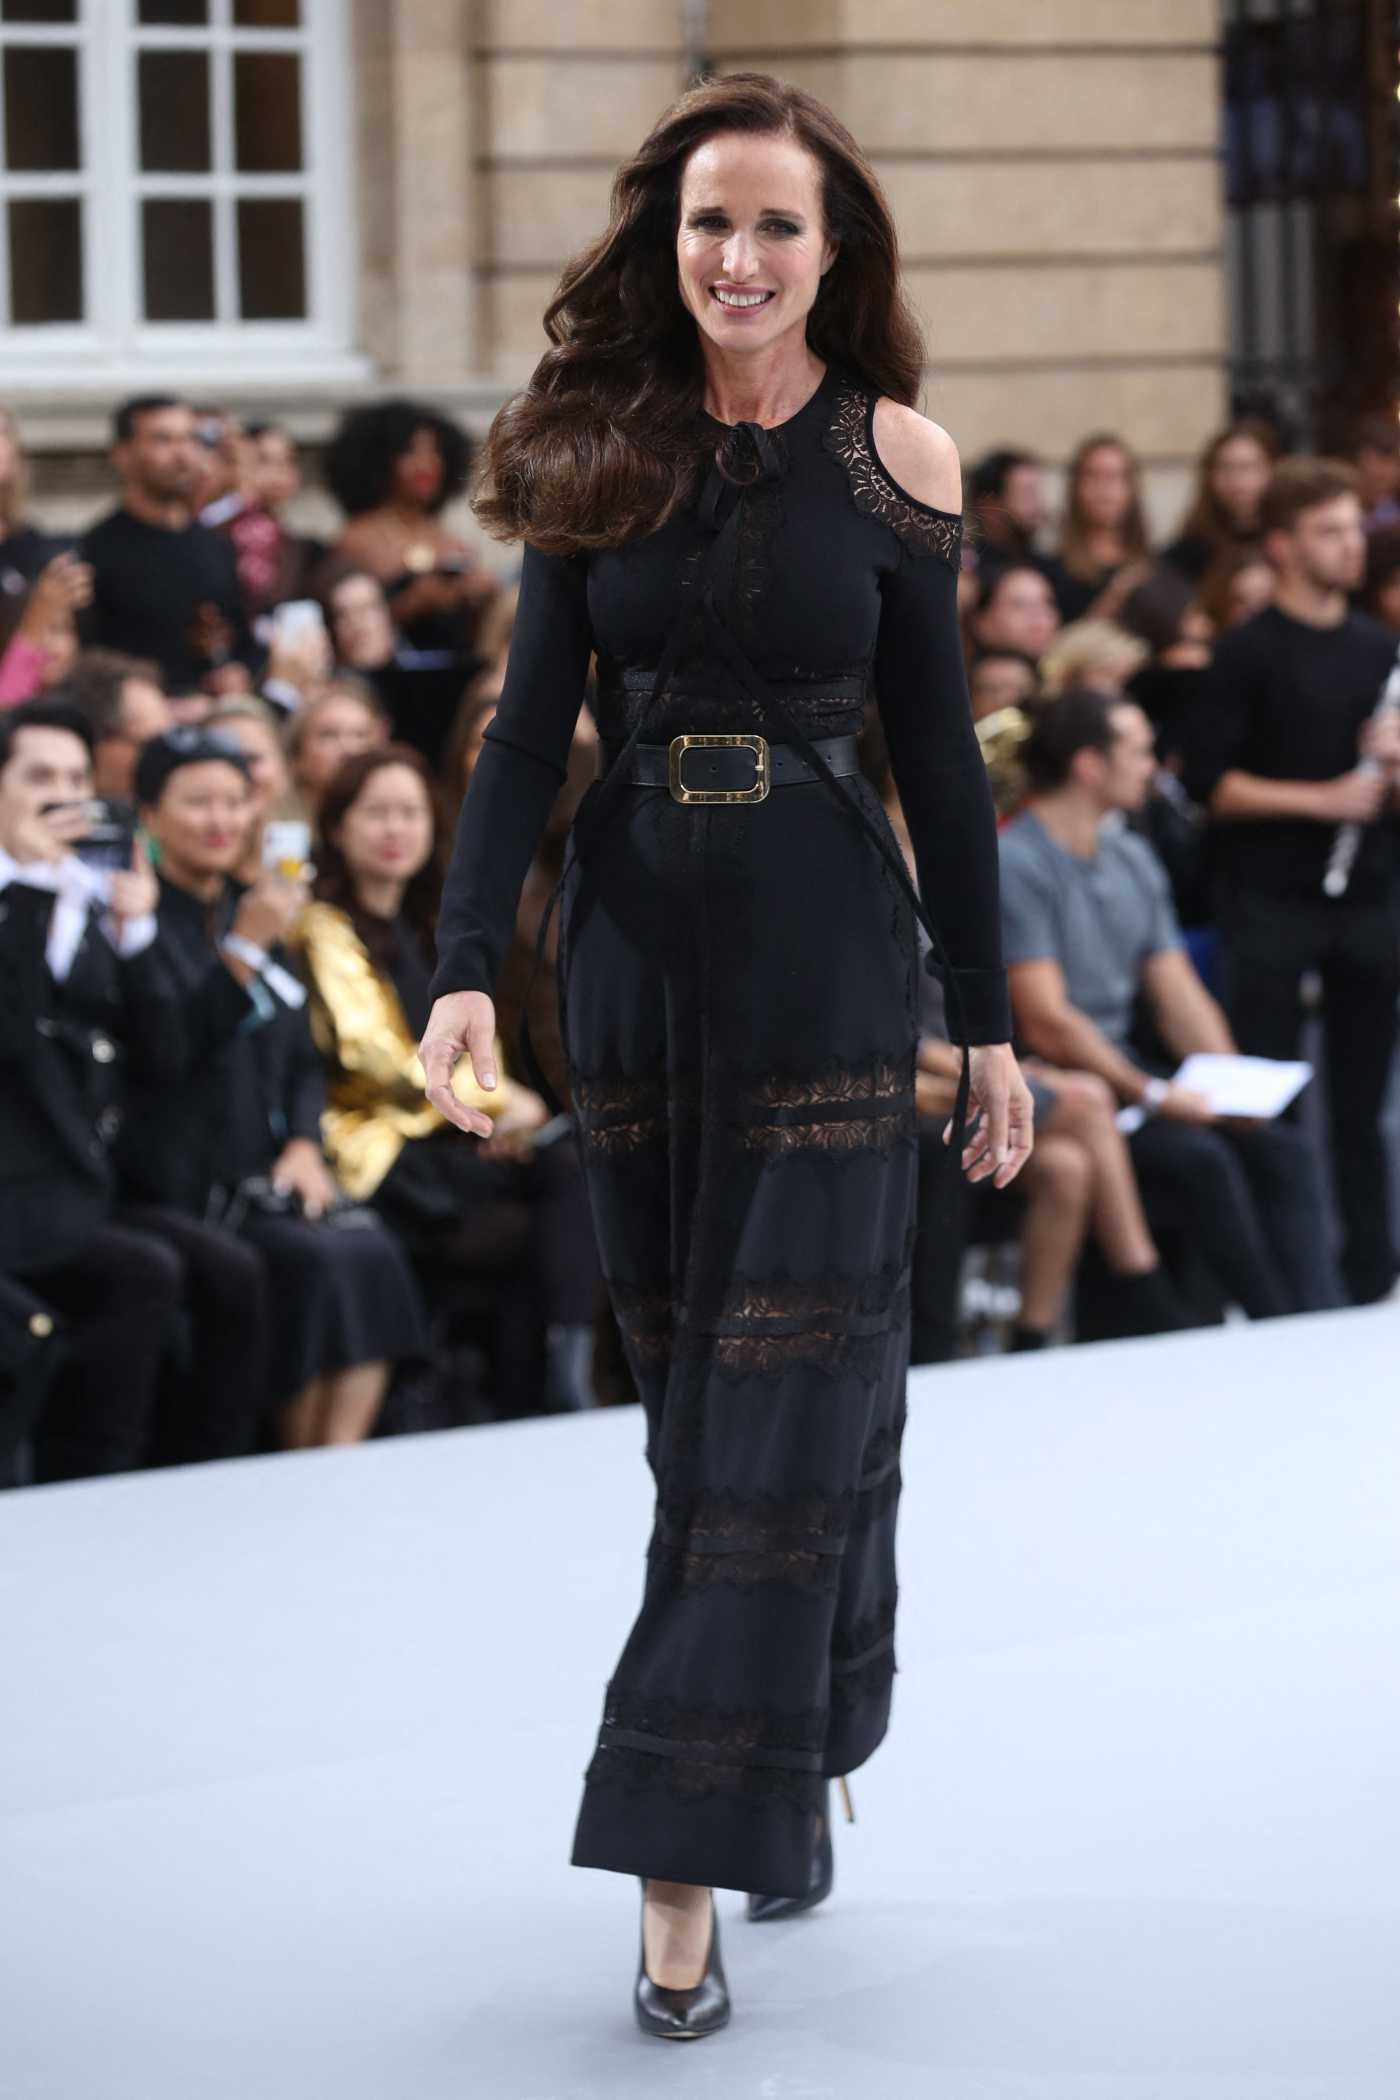 Andie MacDowell Arrives at the Le Defile L'Oreal Paris Show in Paris 09/28/2019